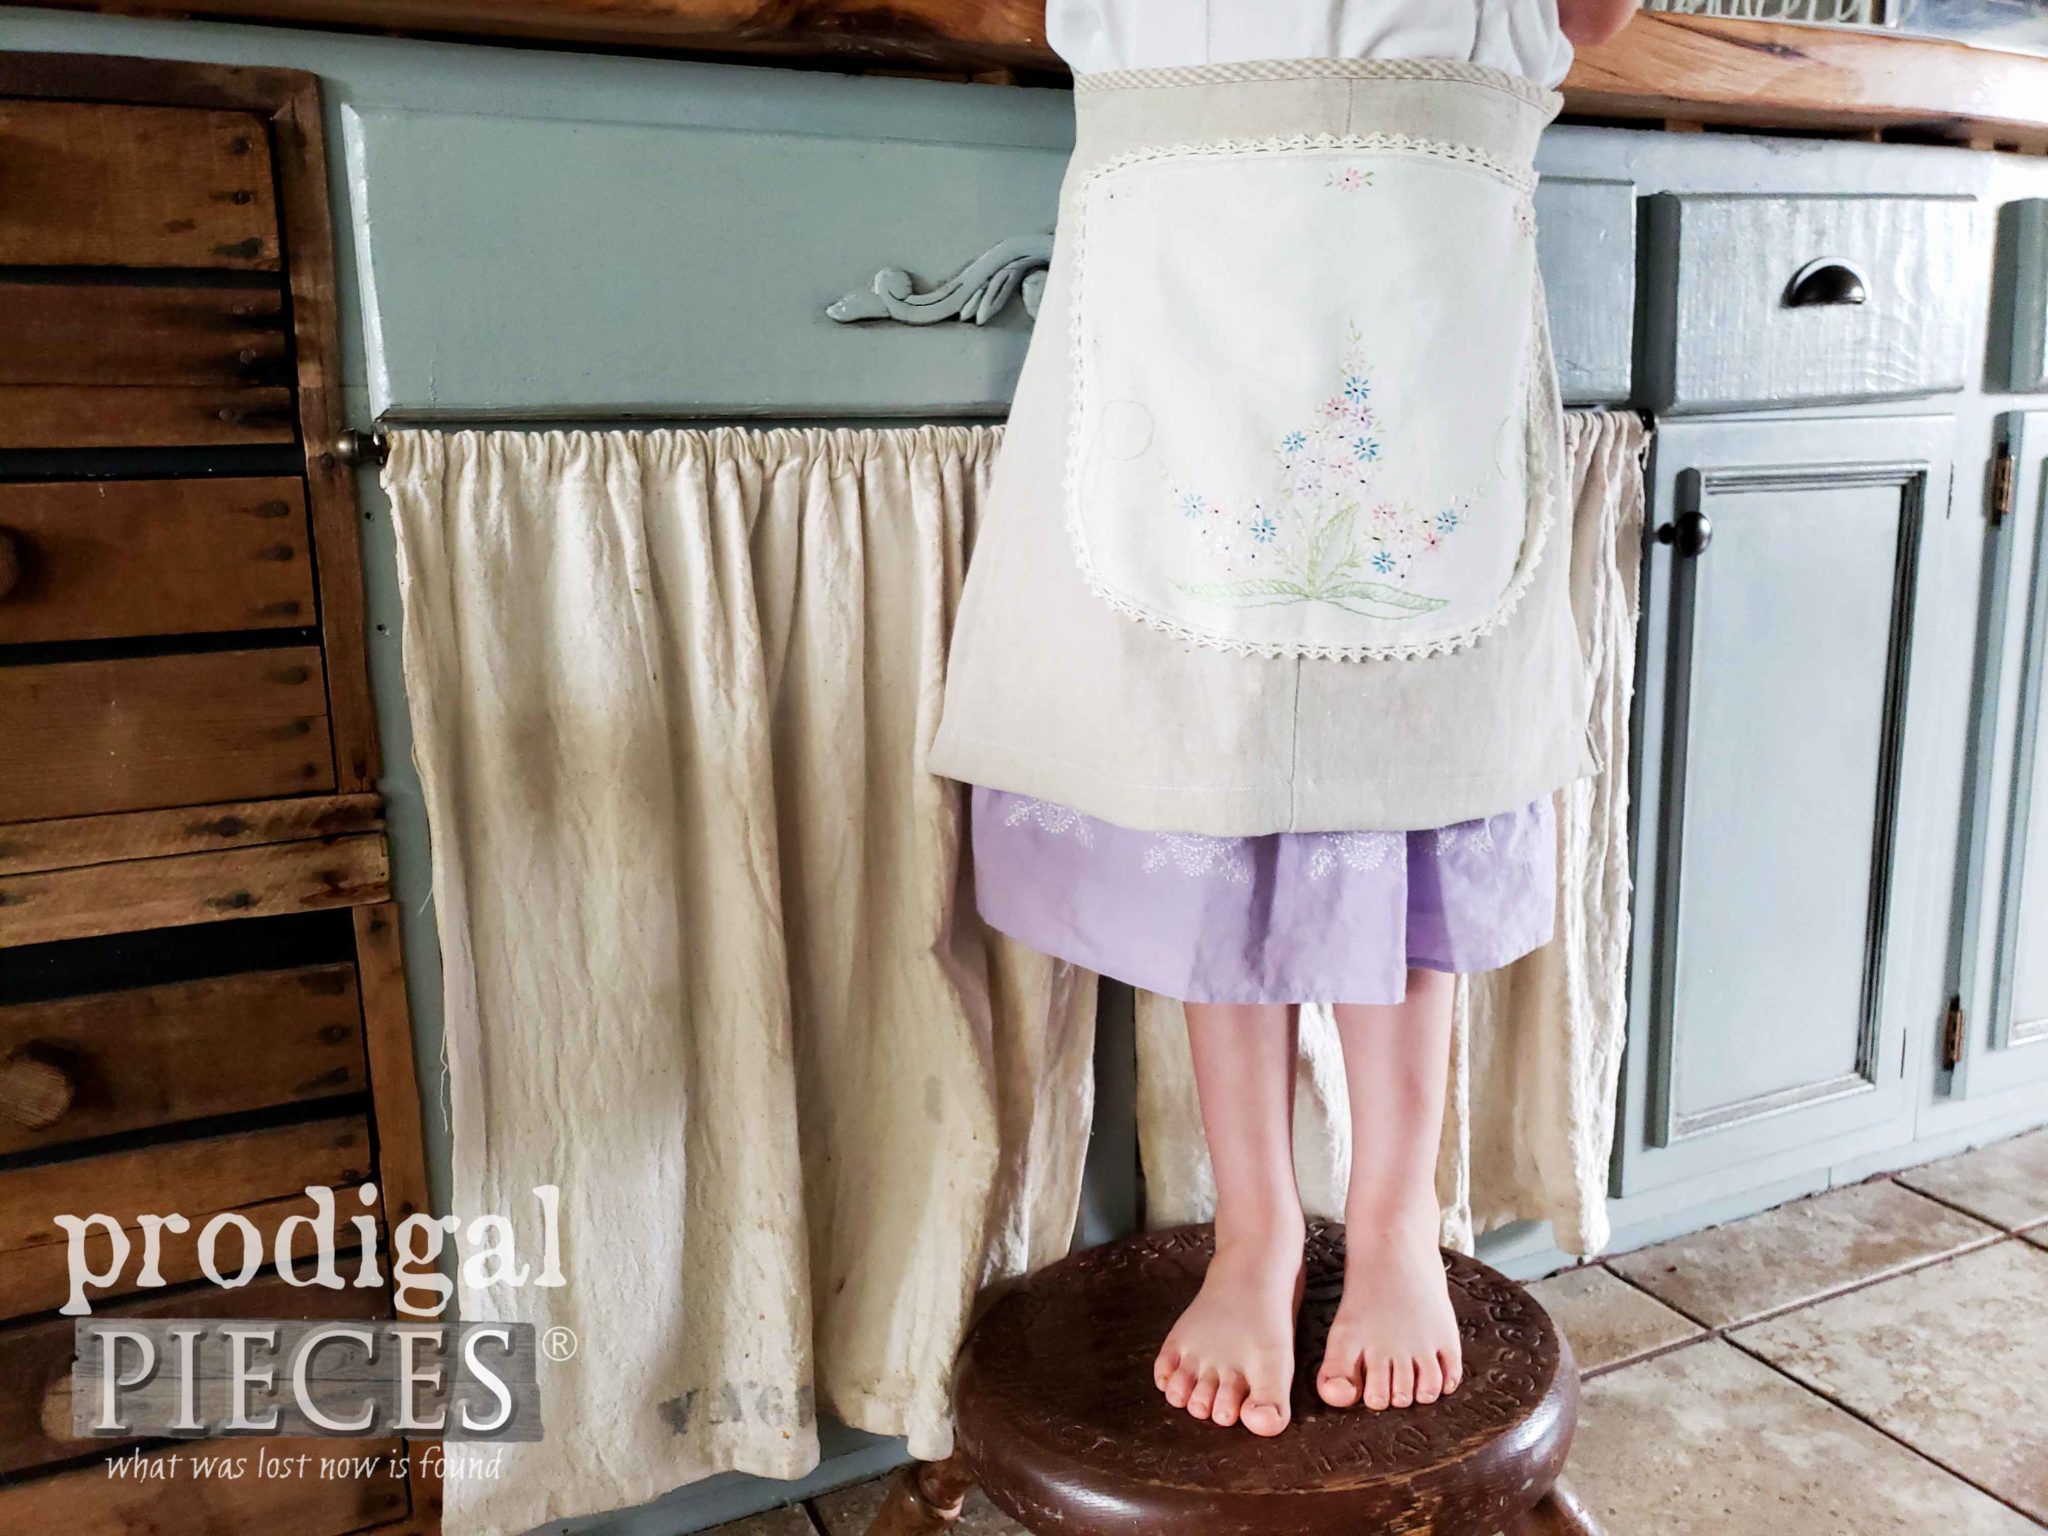 Vintage Embroidery Child's Linen Apron Created by Larissa of Prodigal Pieces | Video tutorial at prodigalpieces.com #prodigalpieces #diy #handmade #sewing #fashion #kids #vintage